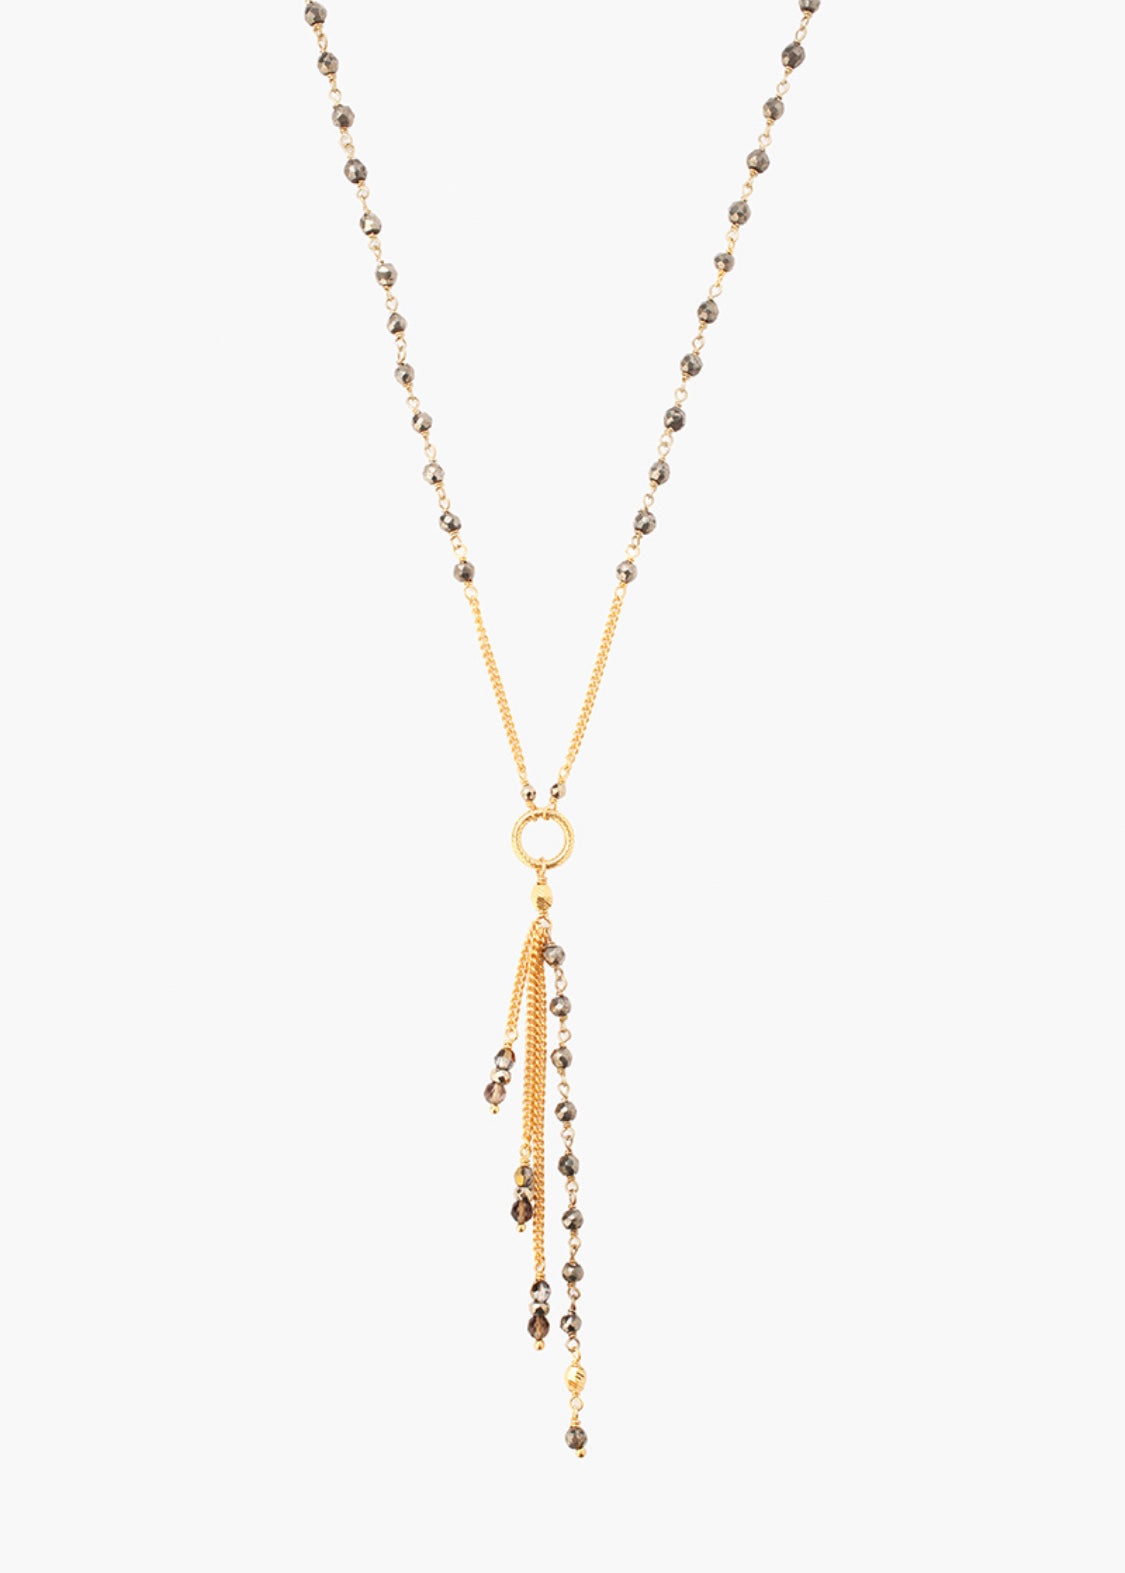 Chan Luu 18k Gold Plated Necklace